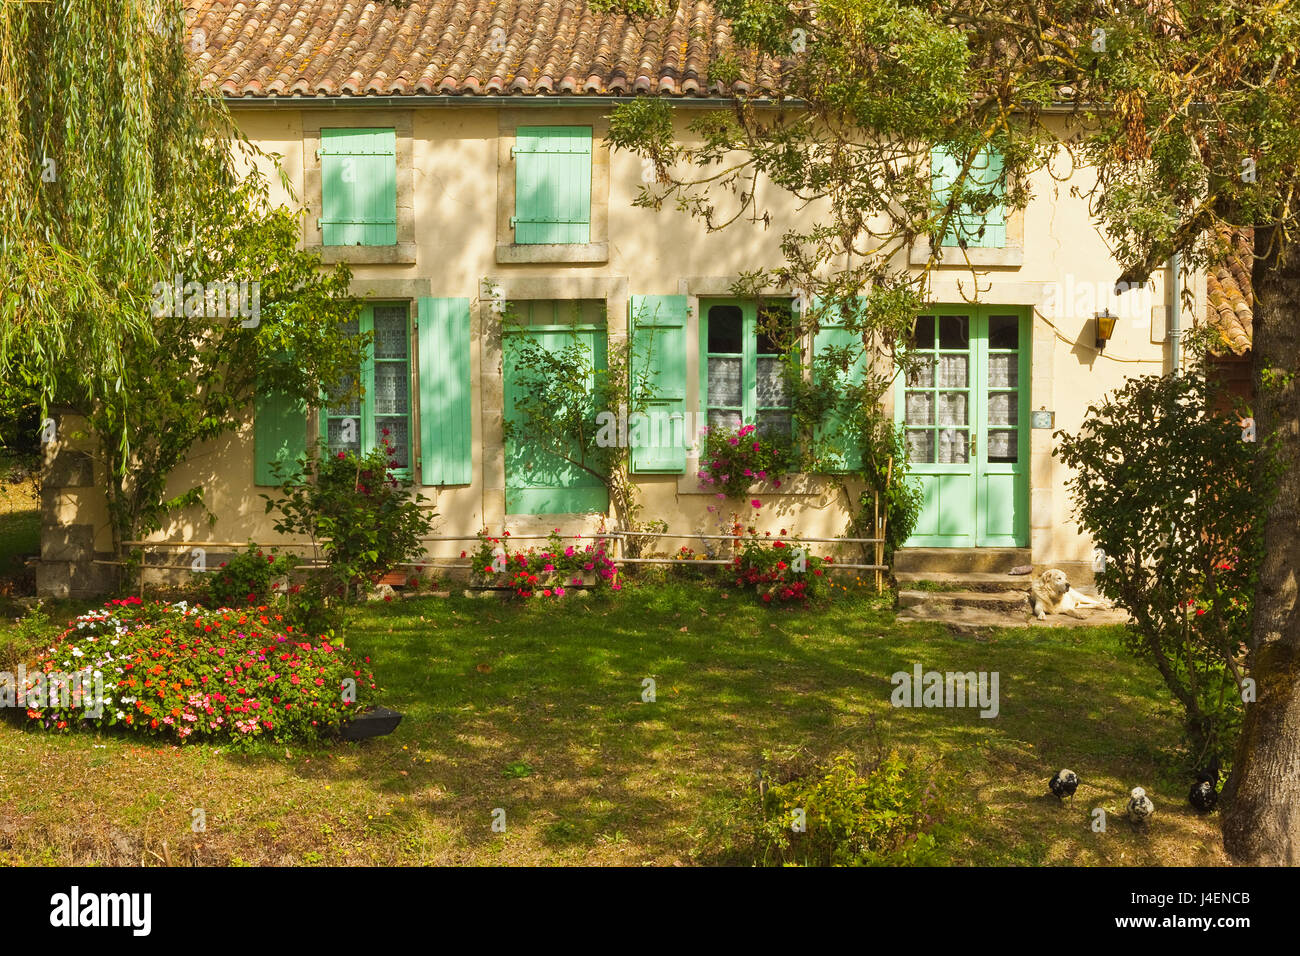 House with typical regional green shutters in the Marais Poitevin (Green Venice) wetlands, Arcais, Nouvelle-Aquitaine, - Stock Image